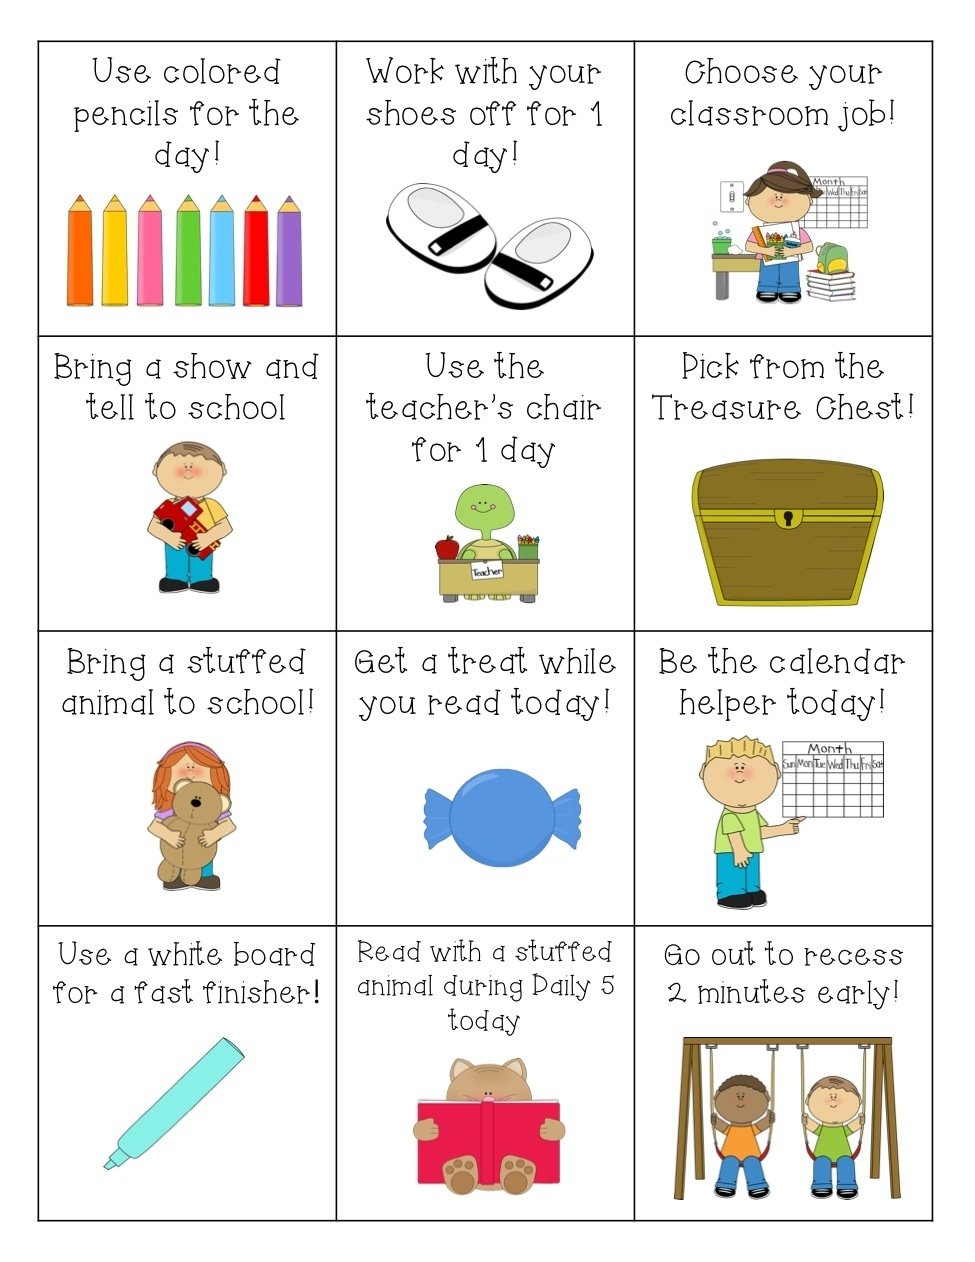 10 Amazing Show And Tell Ideas For Kids crazy daze in first grade 2020